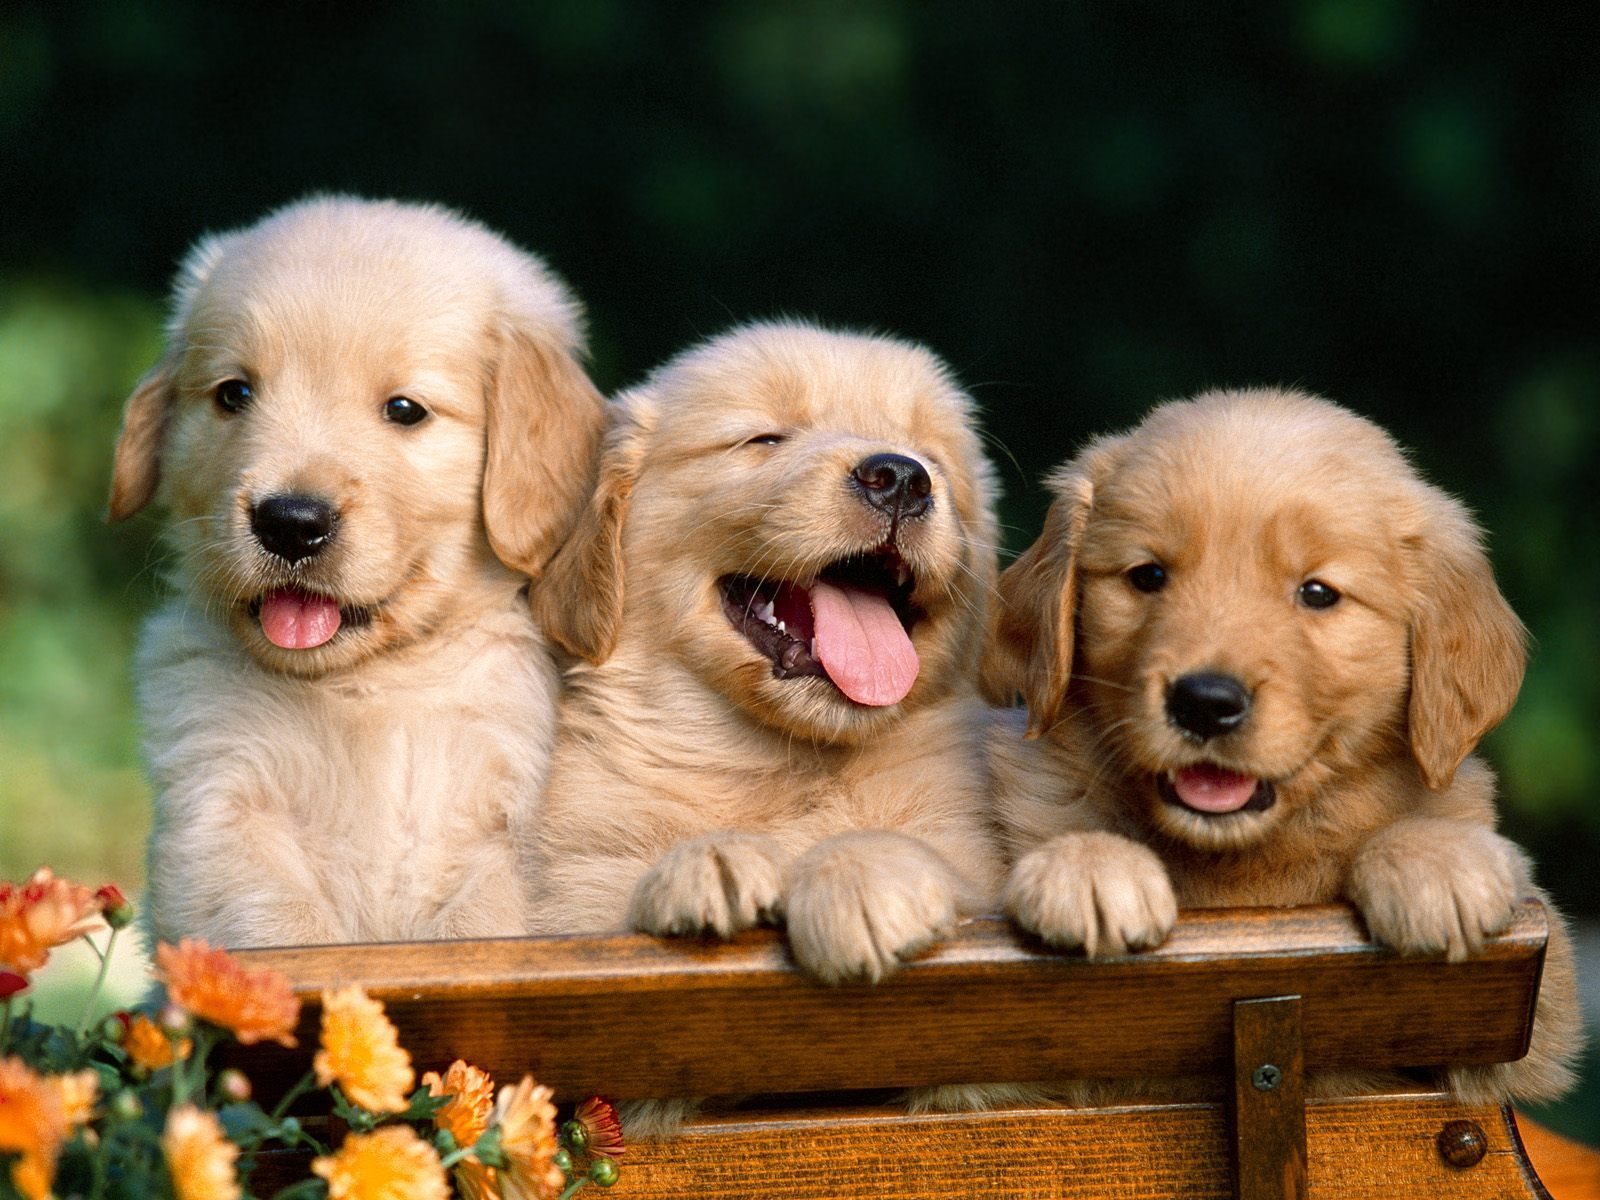 Socializing Your Puppy: Dos and Don'ts